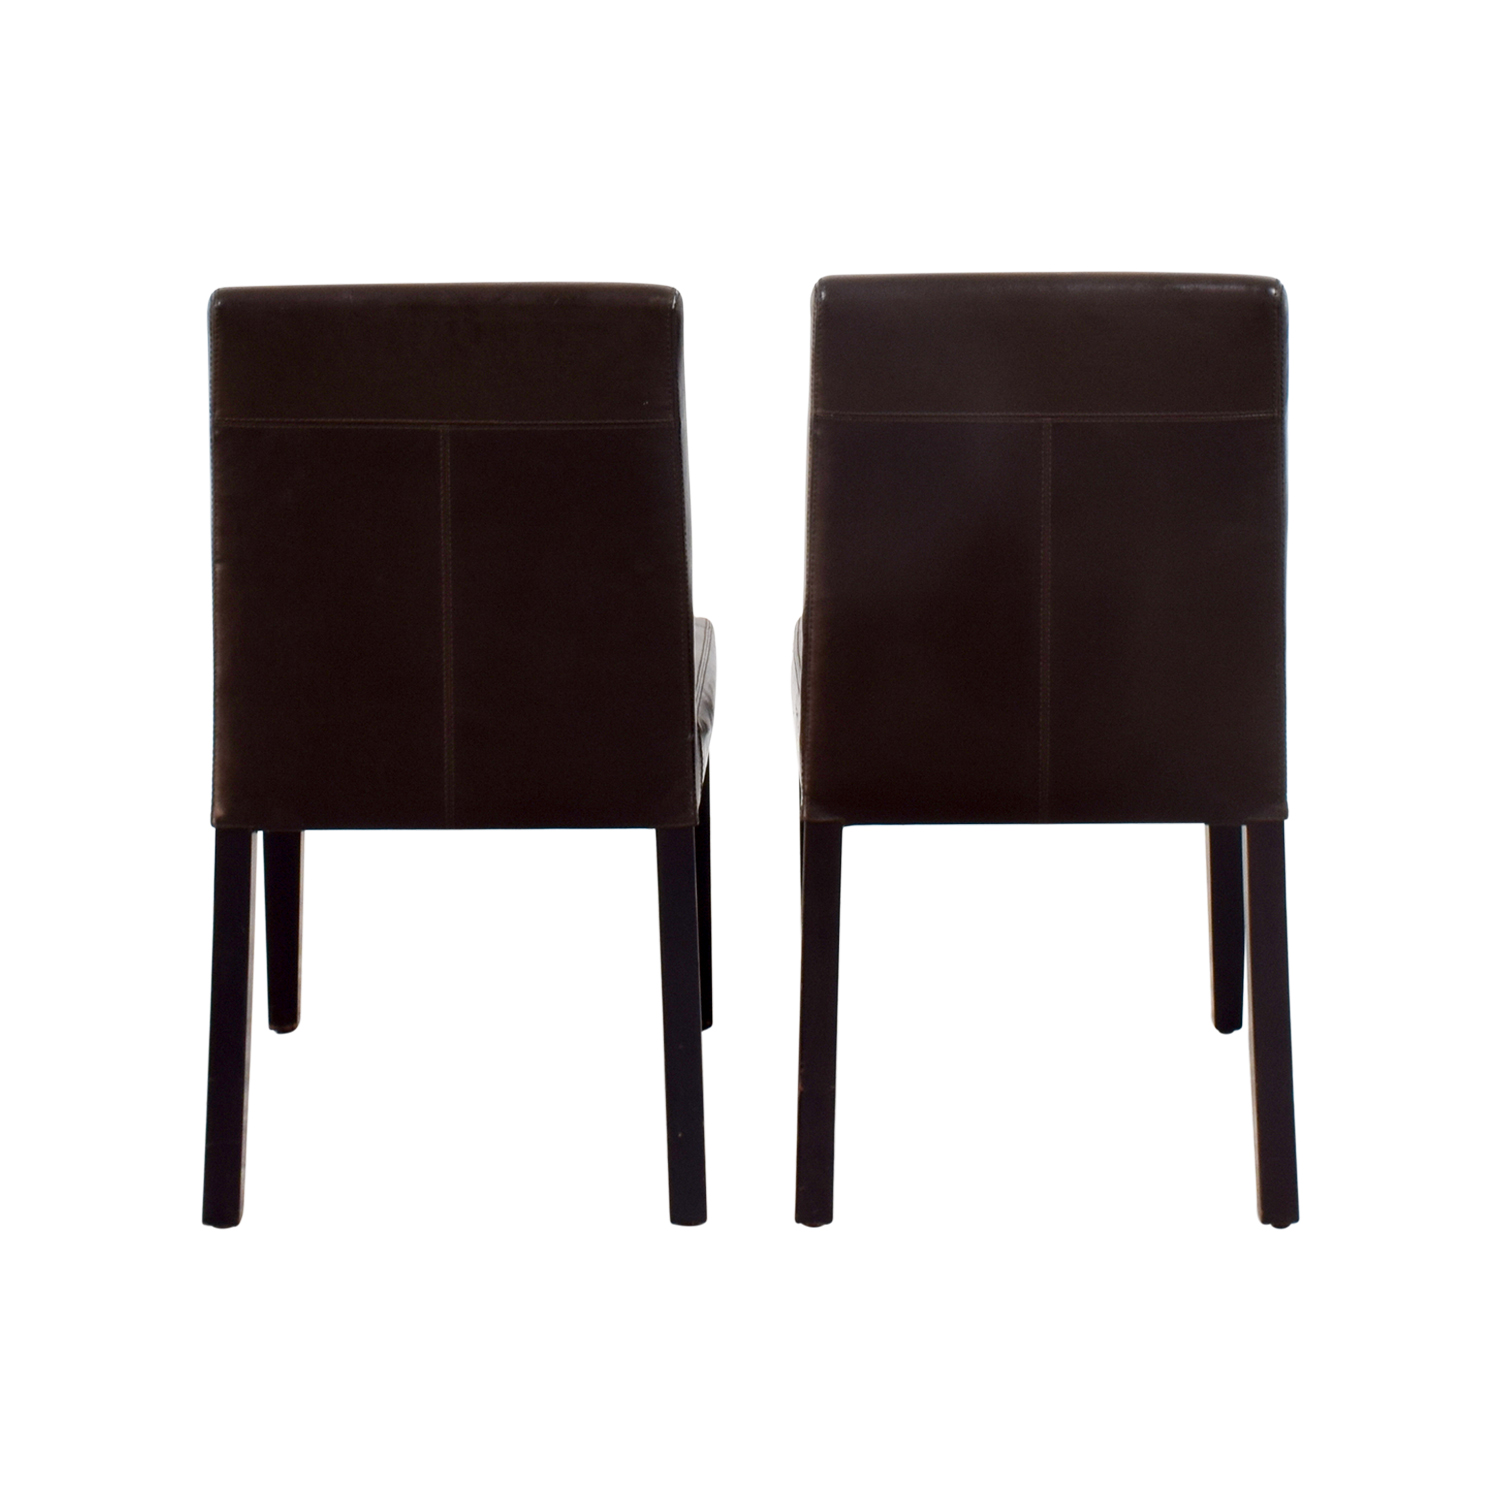 OFF IKEA IKEA White Dining Chairs Chairs - Crate and barrel leather dining chair